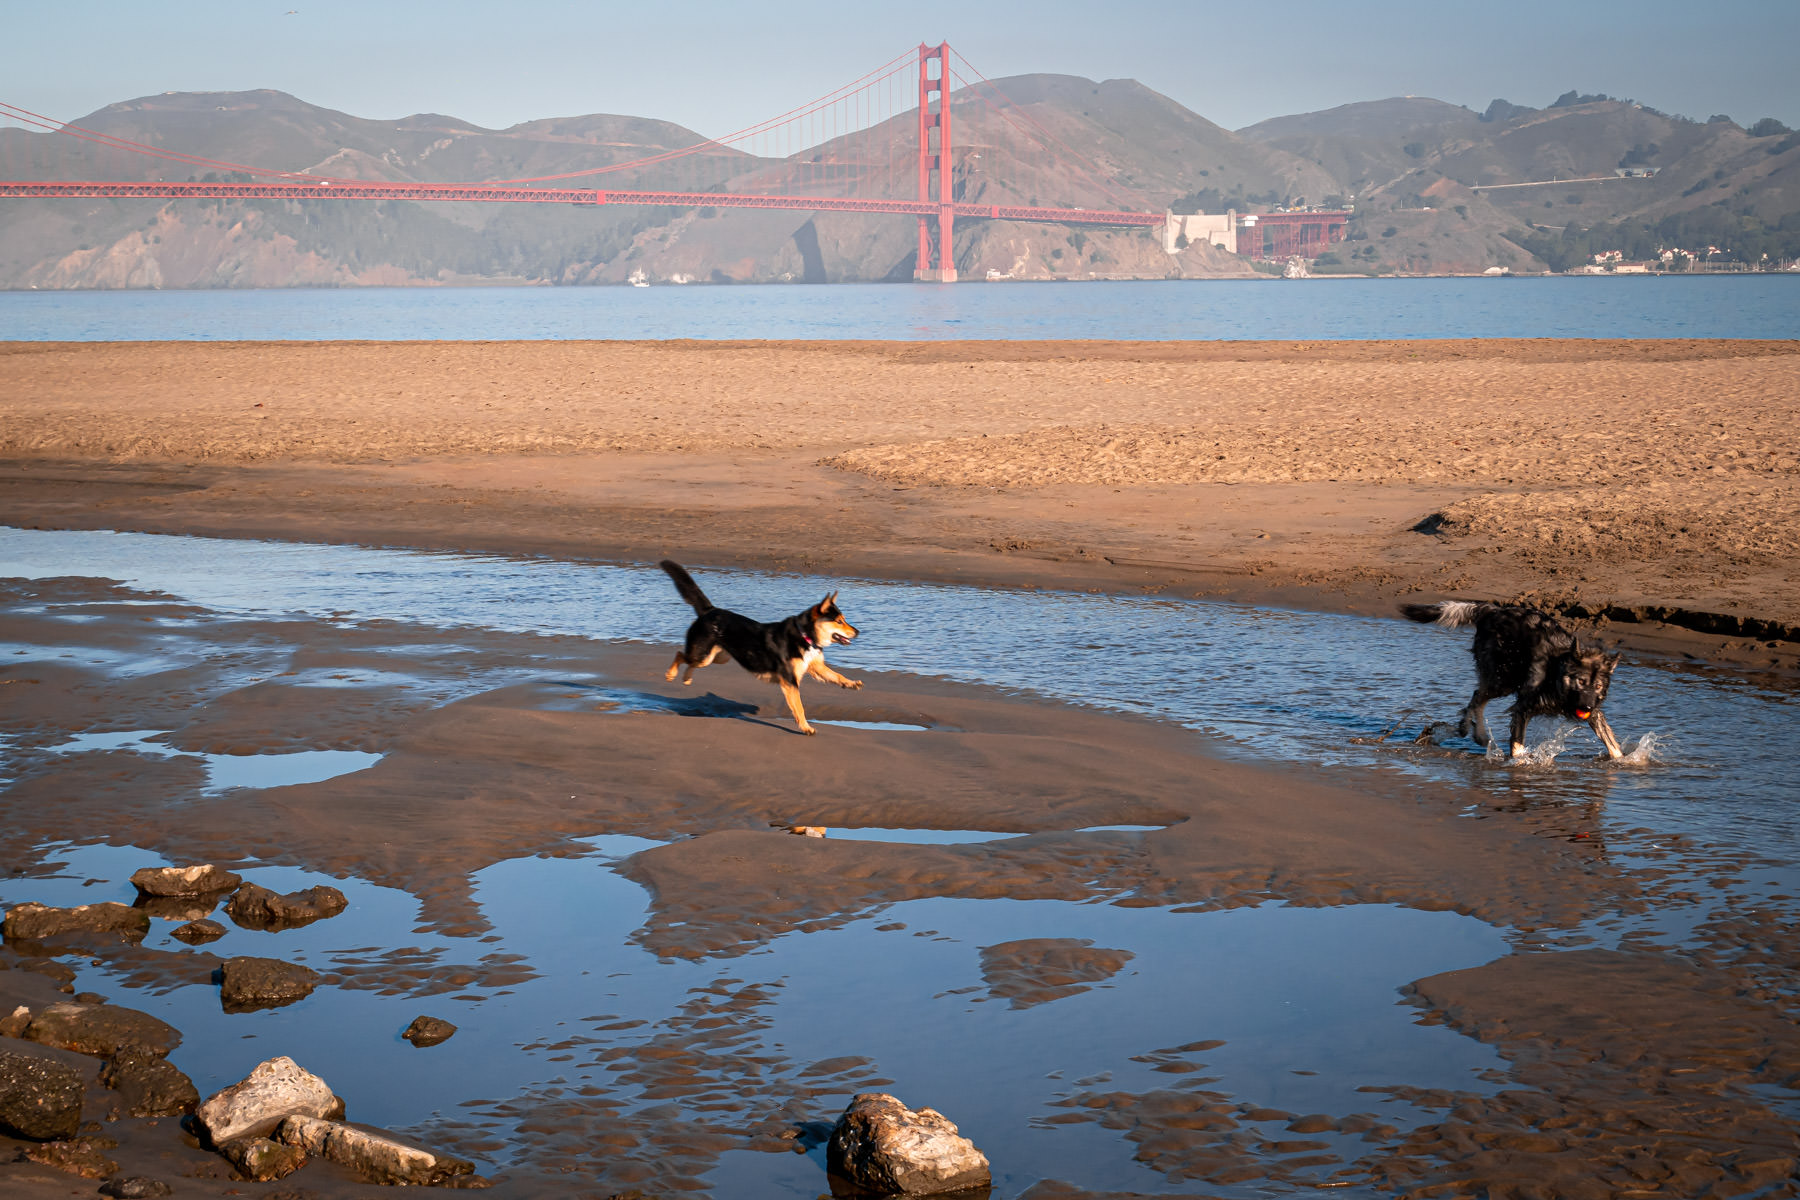 Dogs play on the beach at Crissy Field, San Francisco.